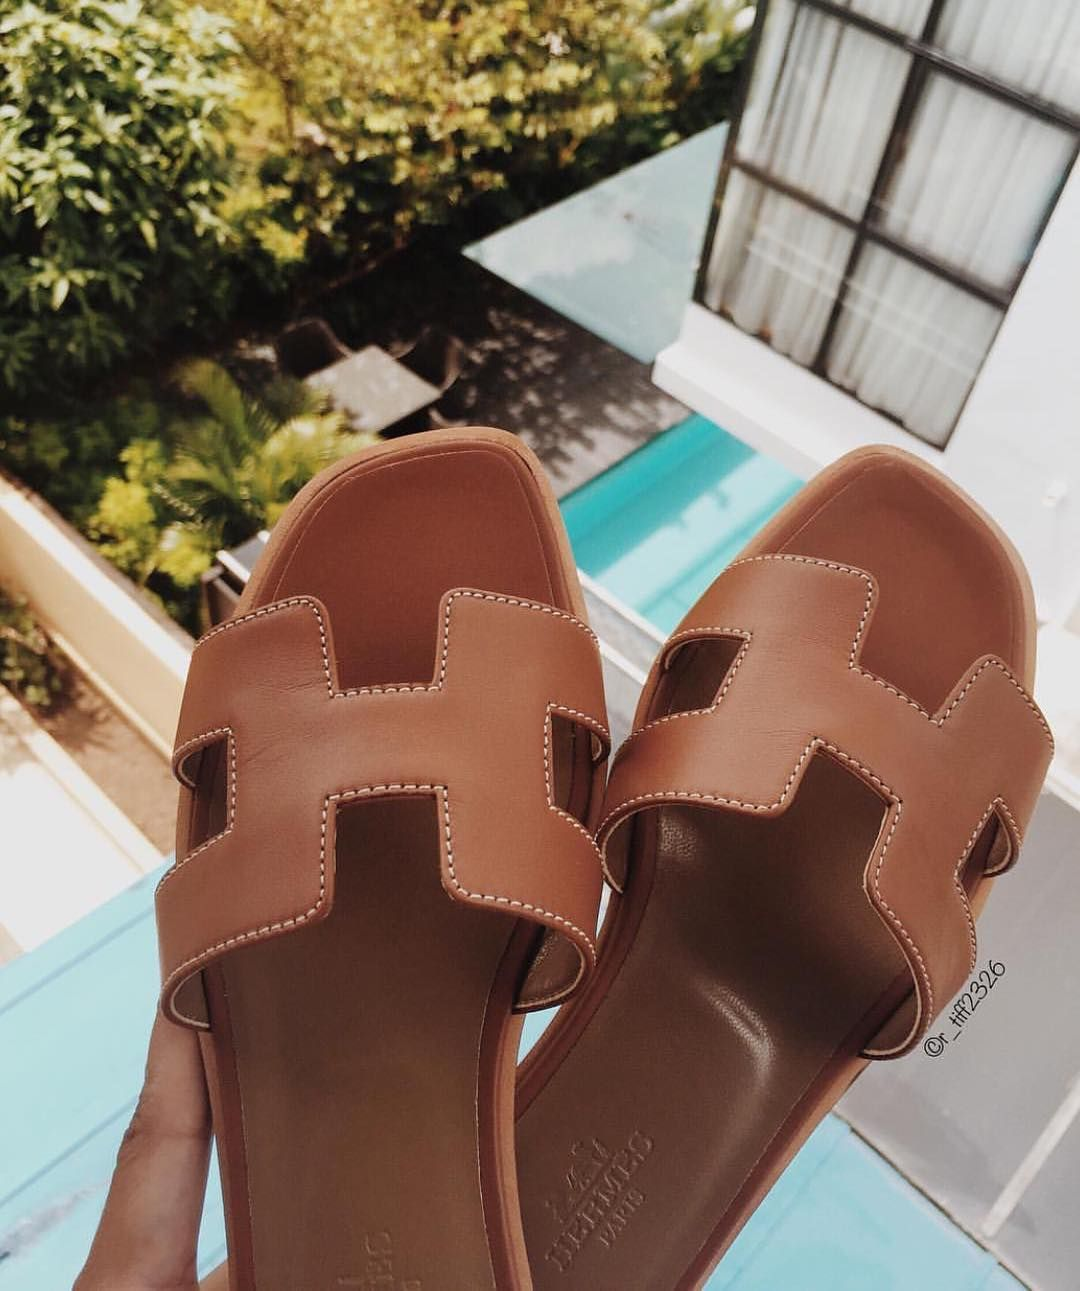 16b53e6f7cf2 Lovely HERMÈS Sandals | clothes and what not in 2019 | Hermes shoes ...